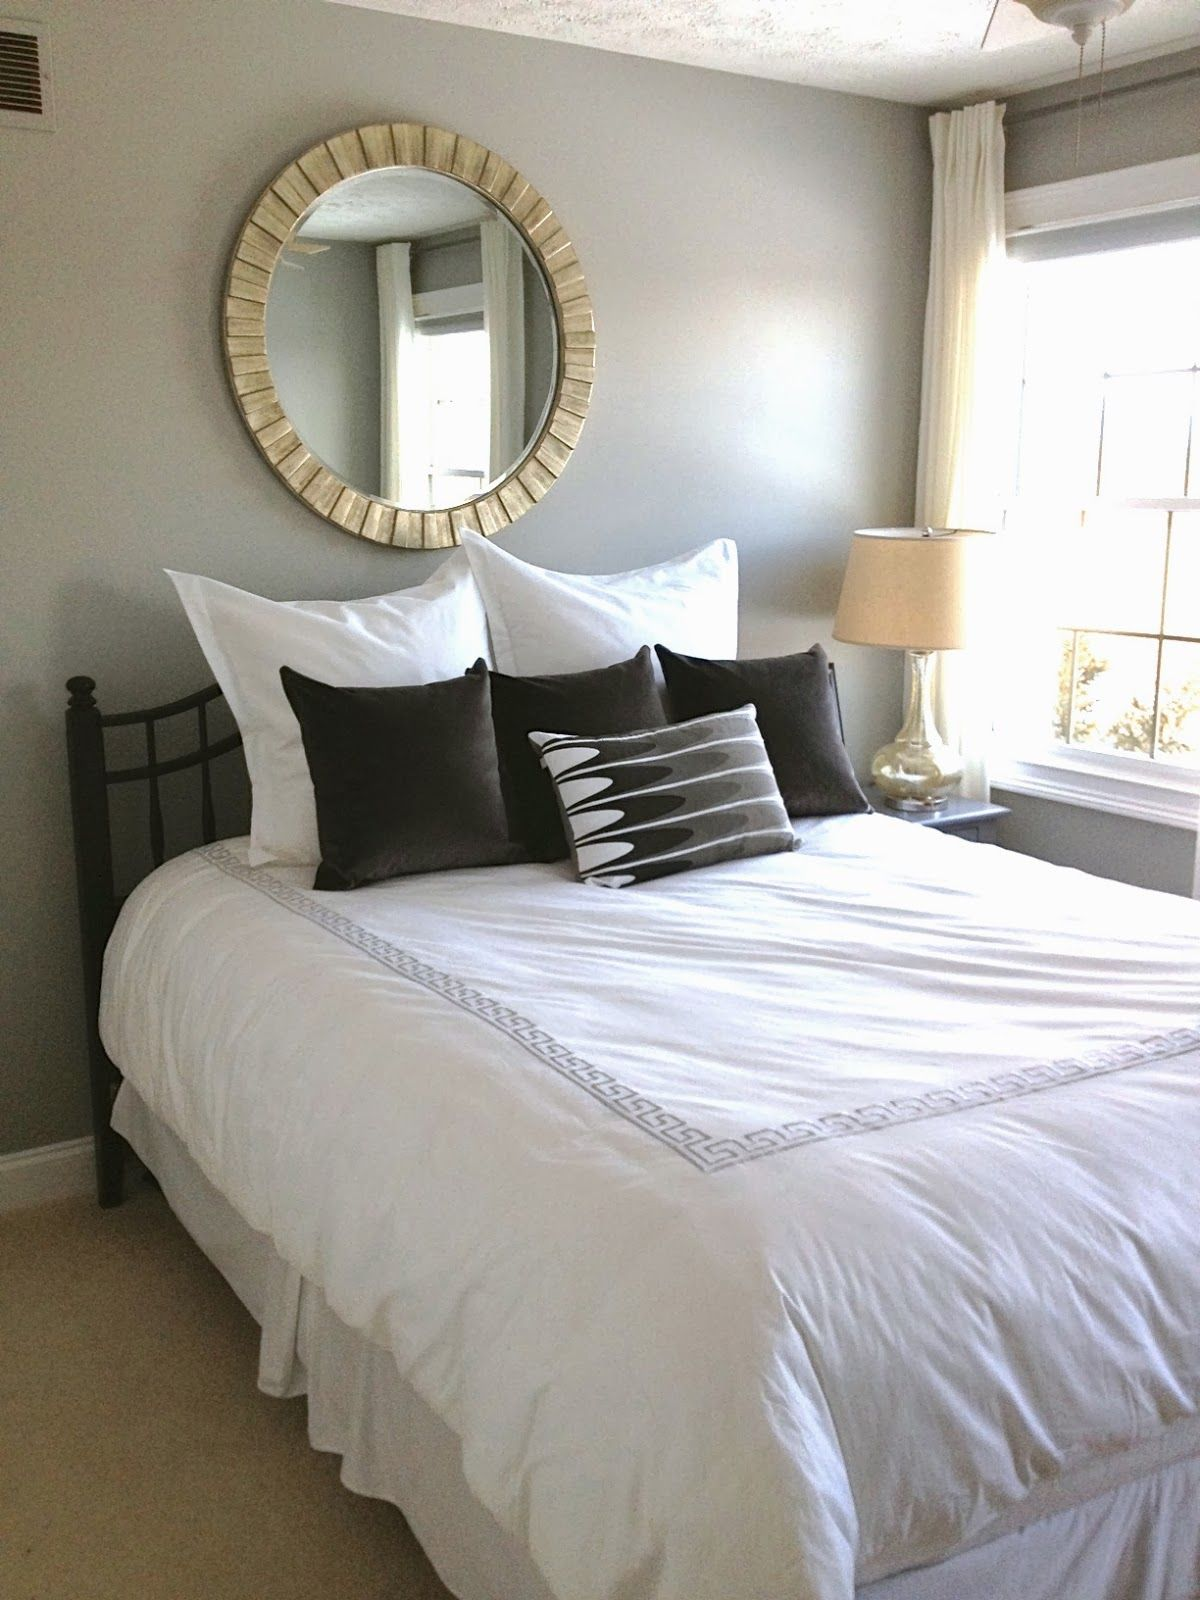 Choosing the paint colour for any direction room angela bunt - The Wall Color Is Bm Coventry Gray Our Guest Room Faces West And Get A